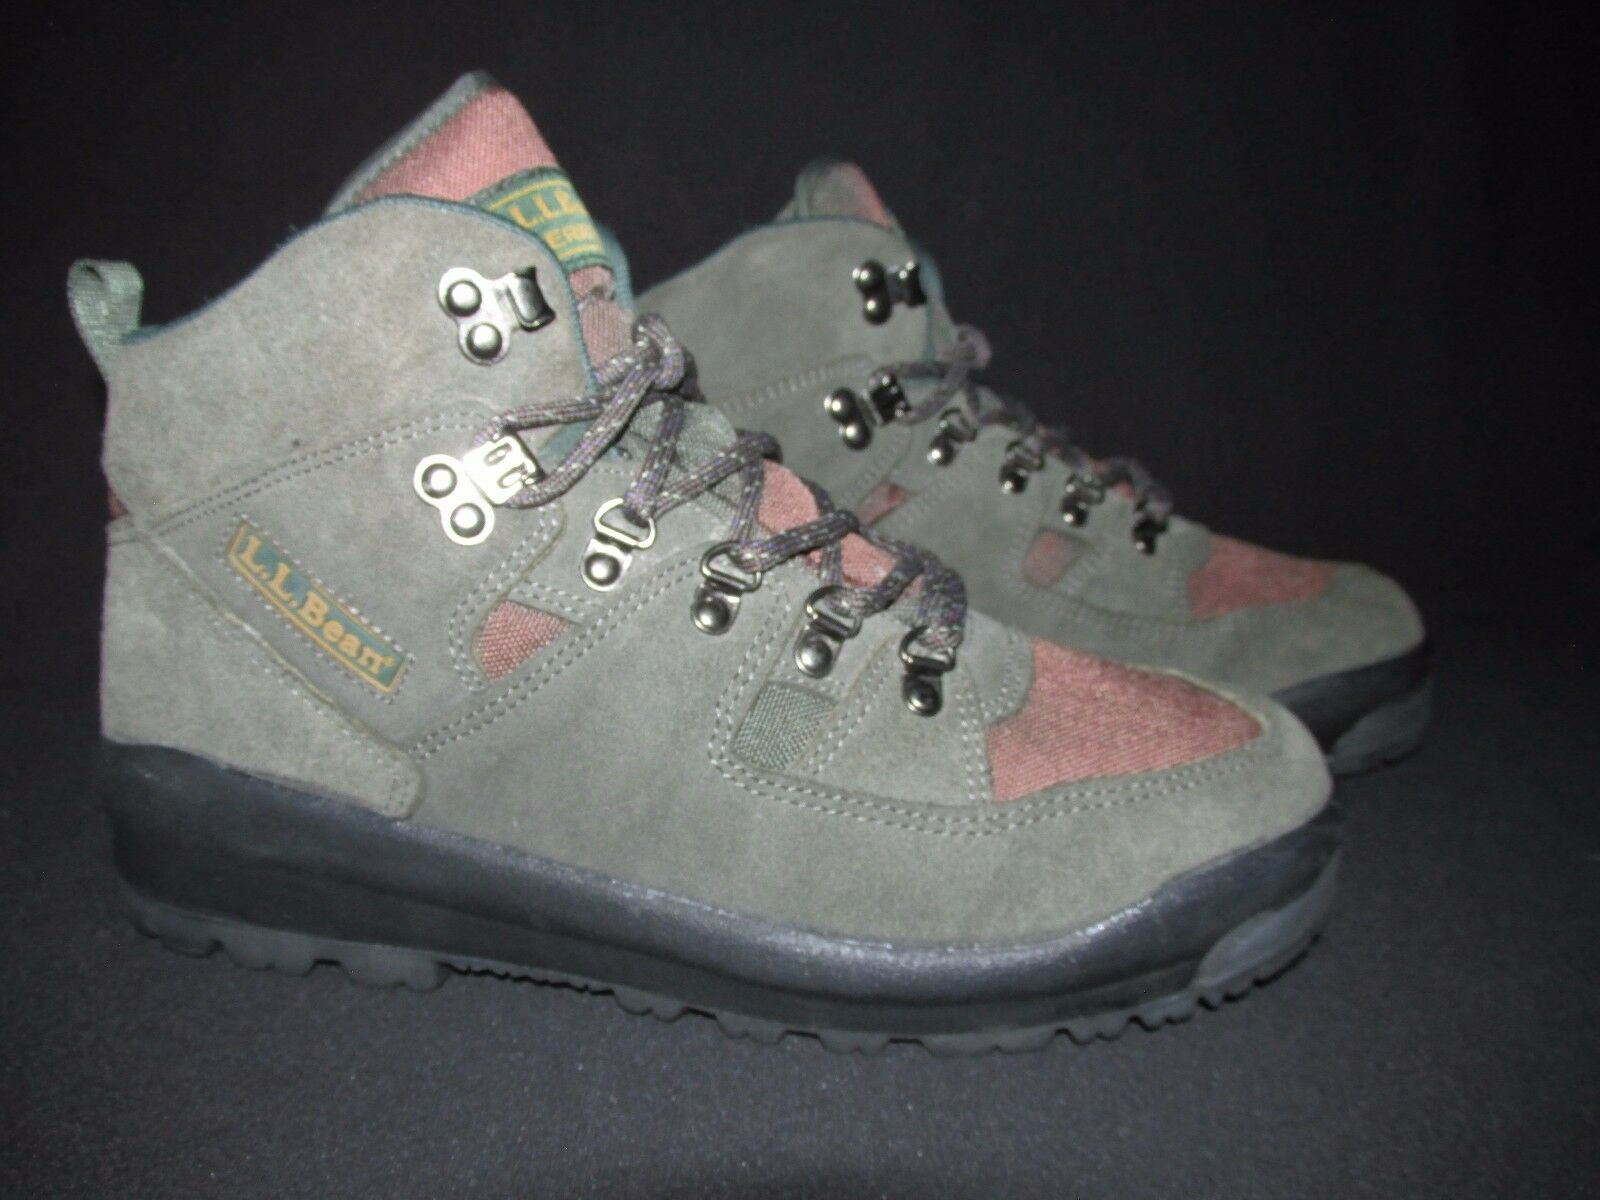 L.L. Bean Merrell X660 Green Brown Suede Nylon Hiking Trail Boots Women's 10W